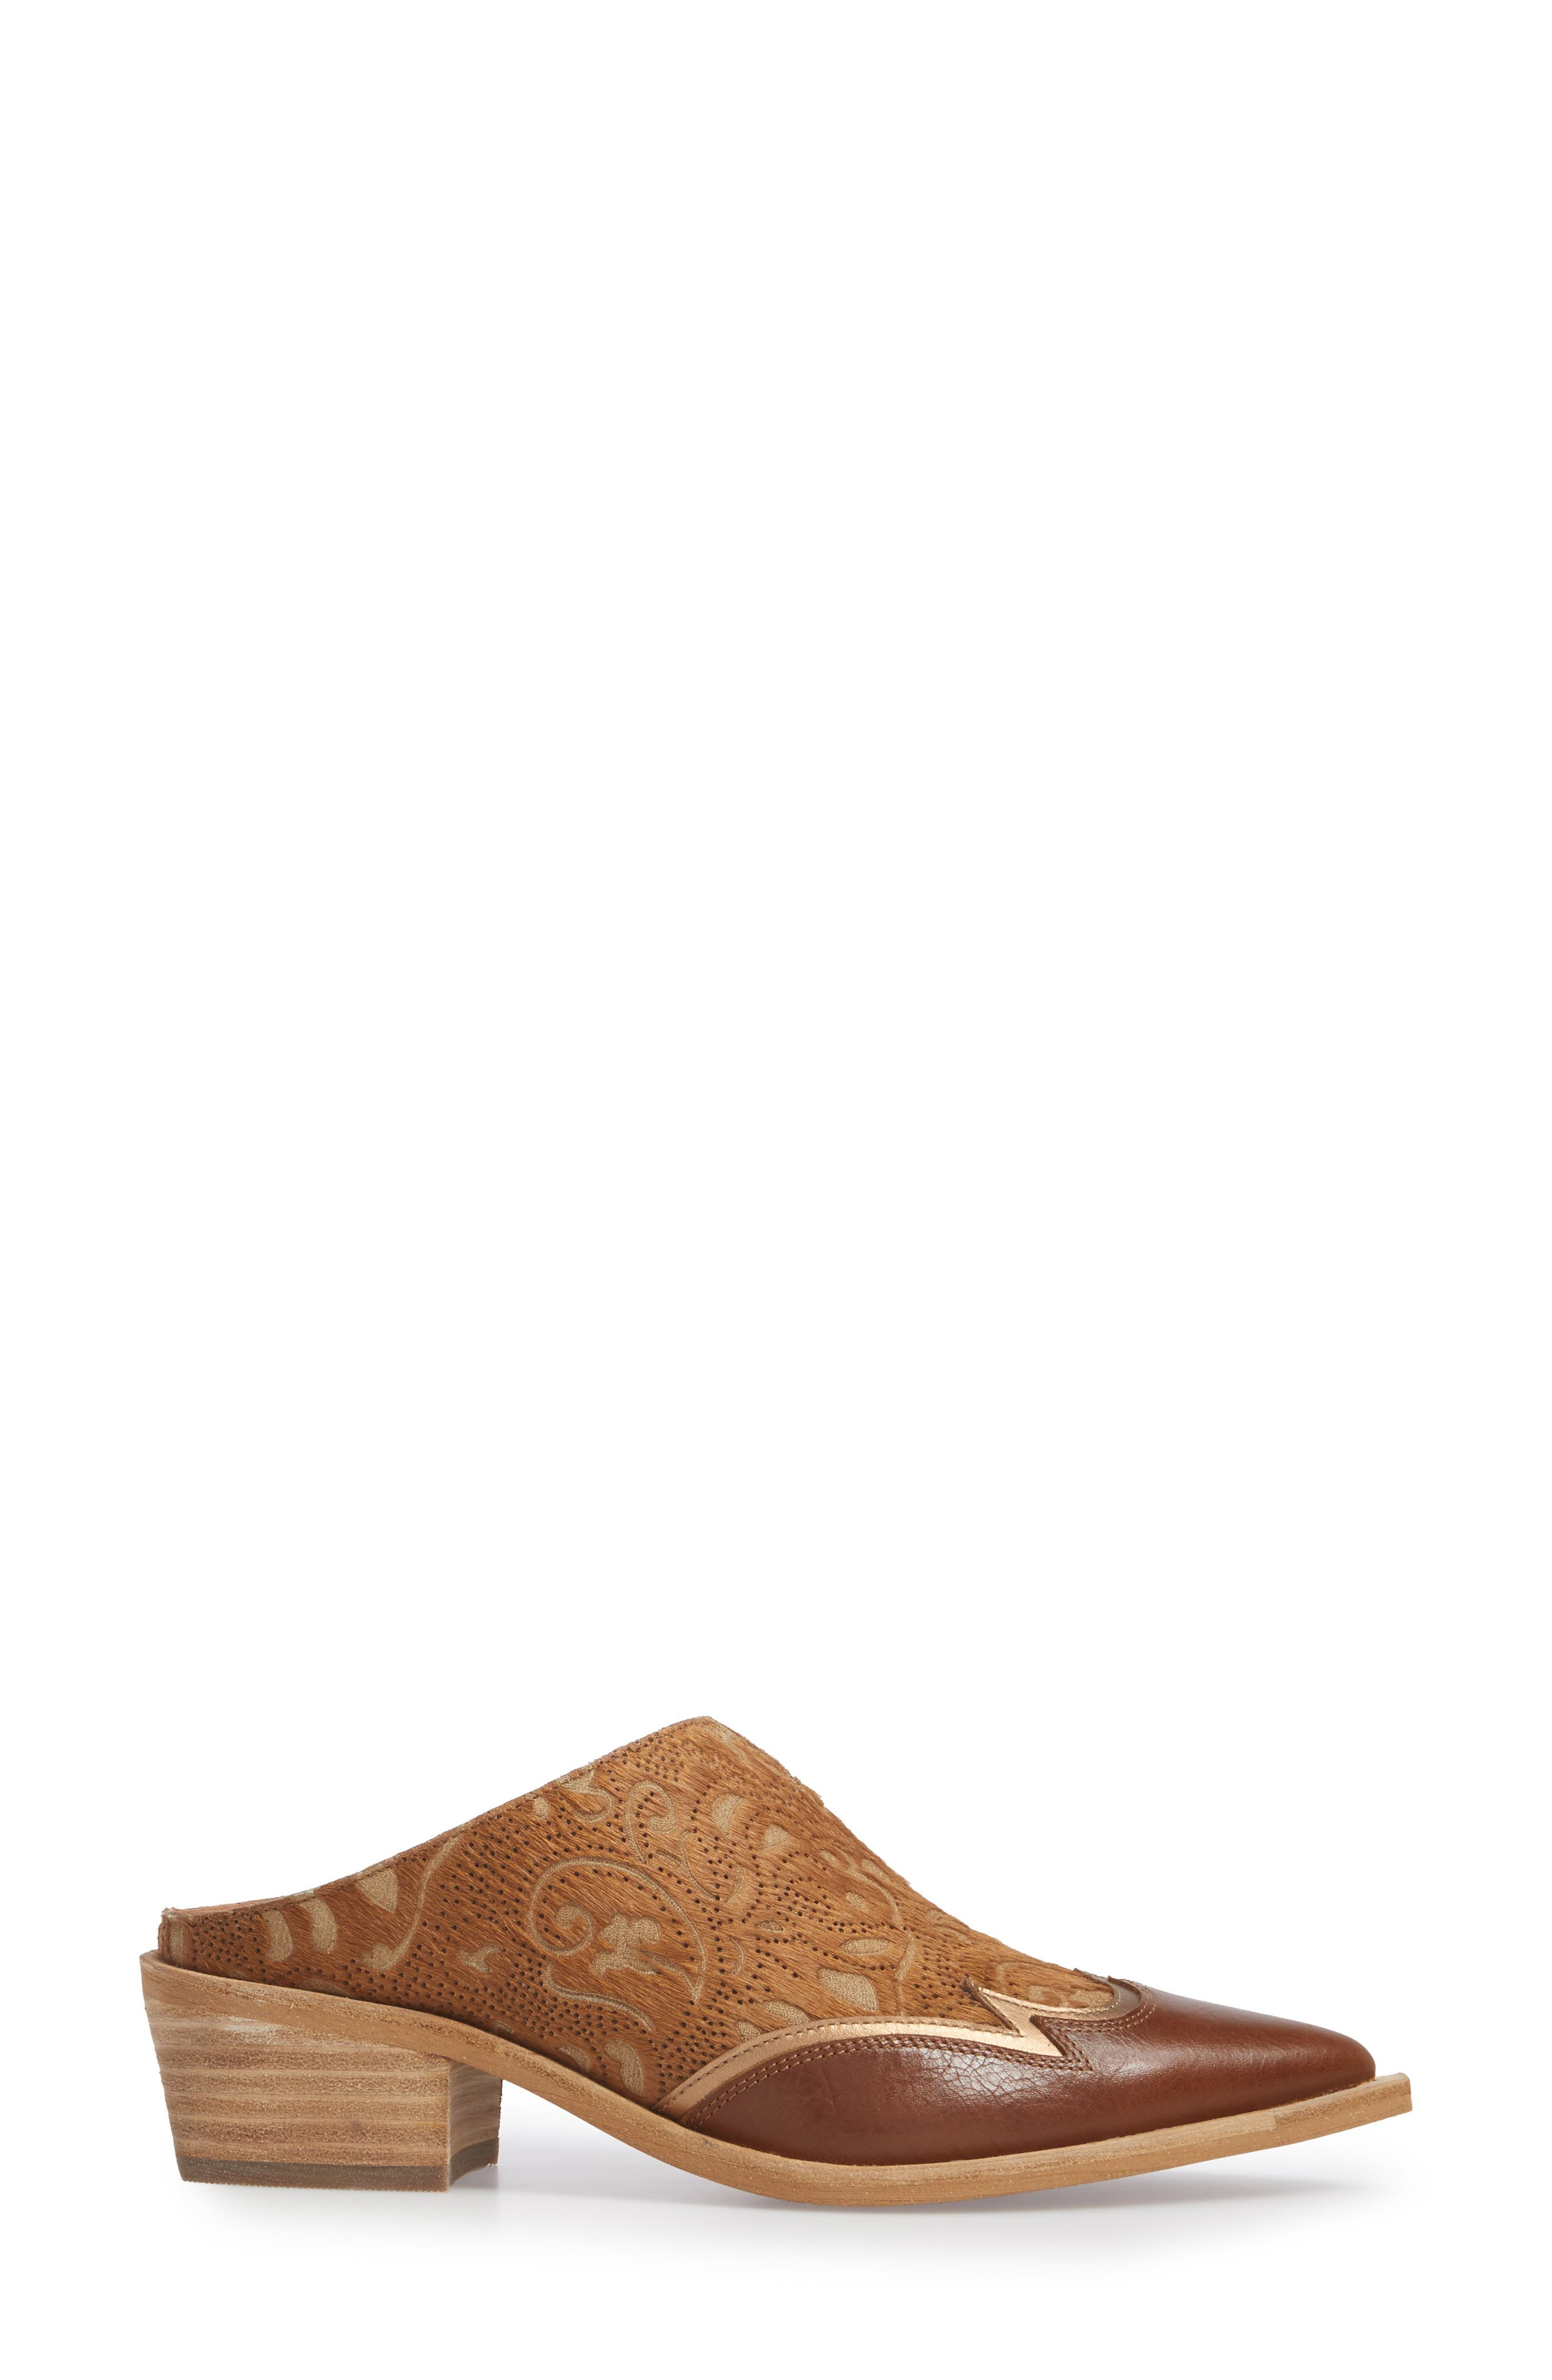 Waylon Genuine Calf Hair Western Mule,                             Alternate thumbnail 3, color,                             Camel Leather